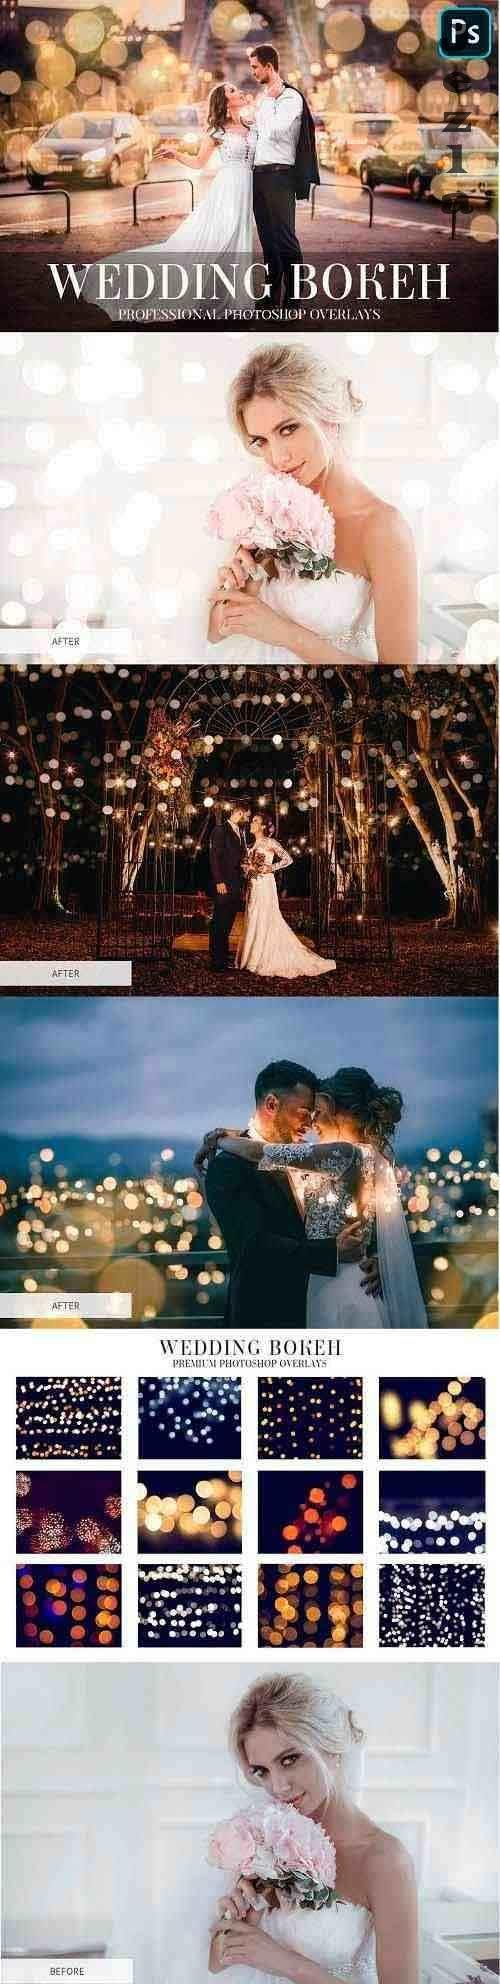 CreativeMarket - Wedding Bokeh Overlays 4934941